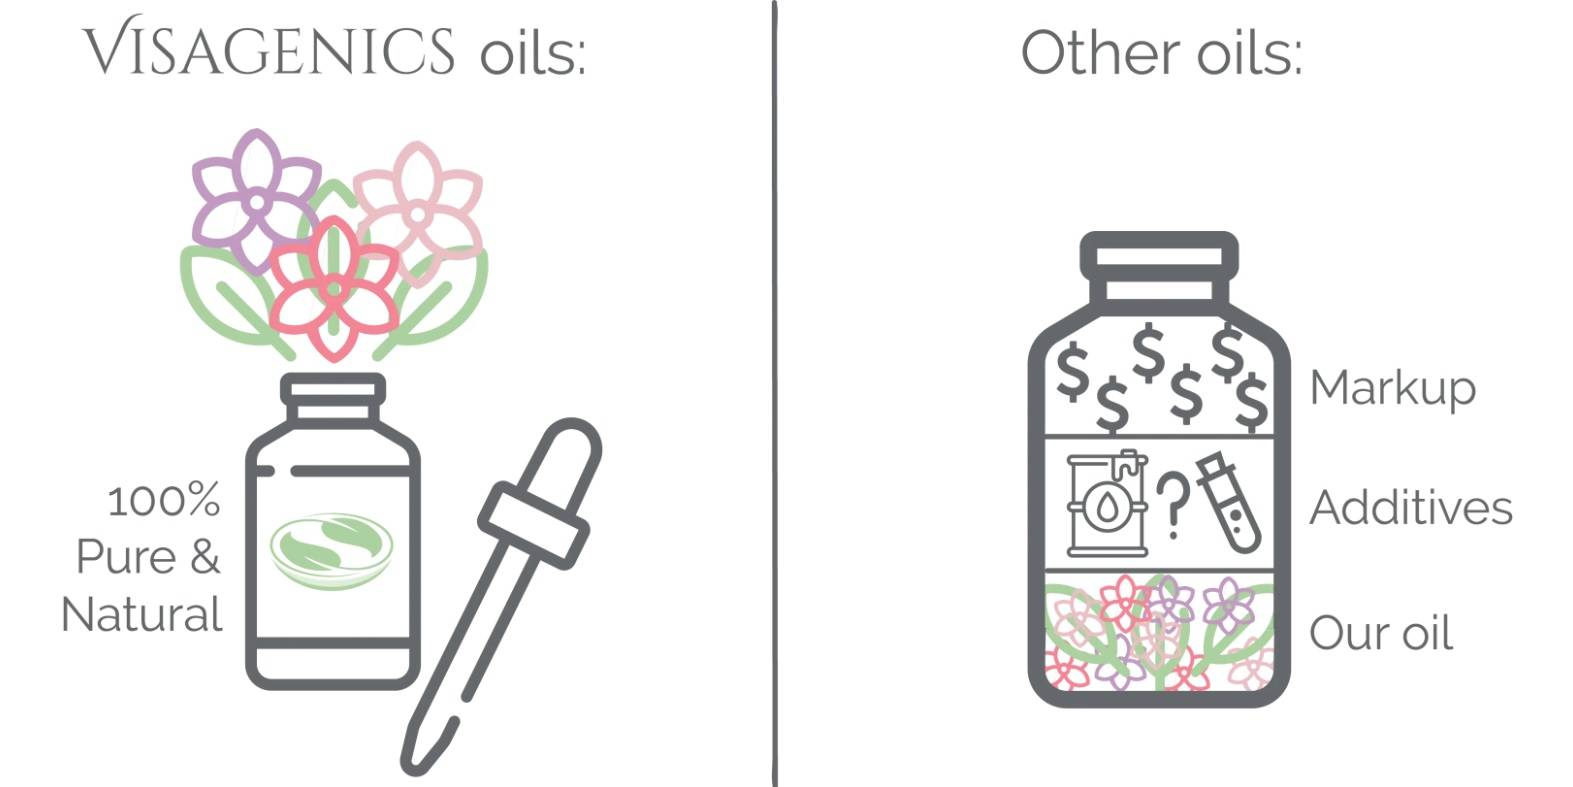 Visagenics Massage Oil vs. Other Oils